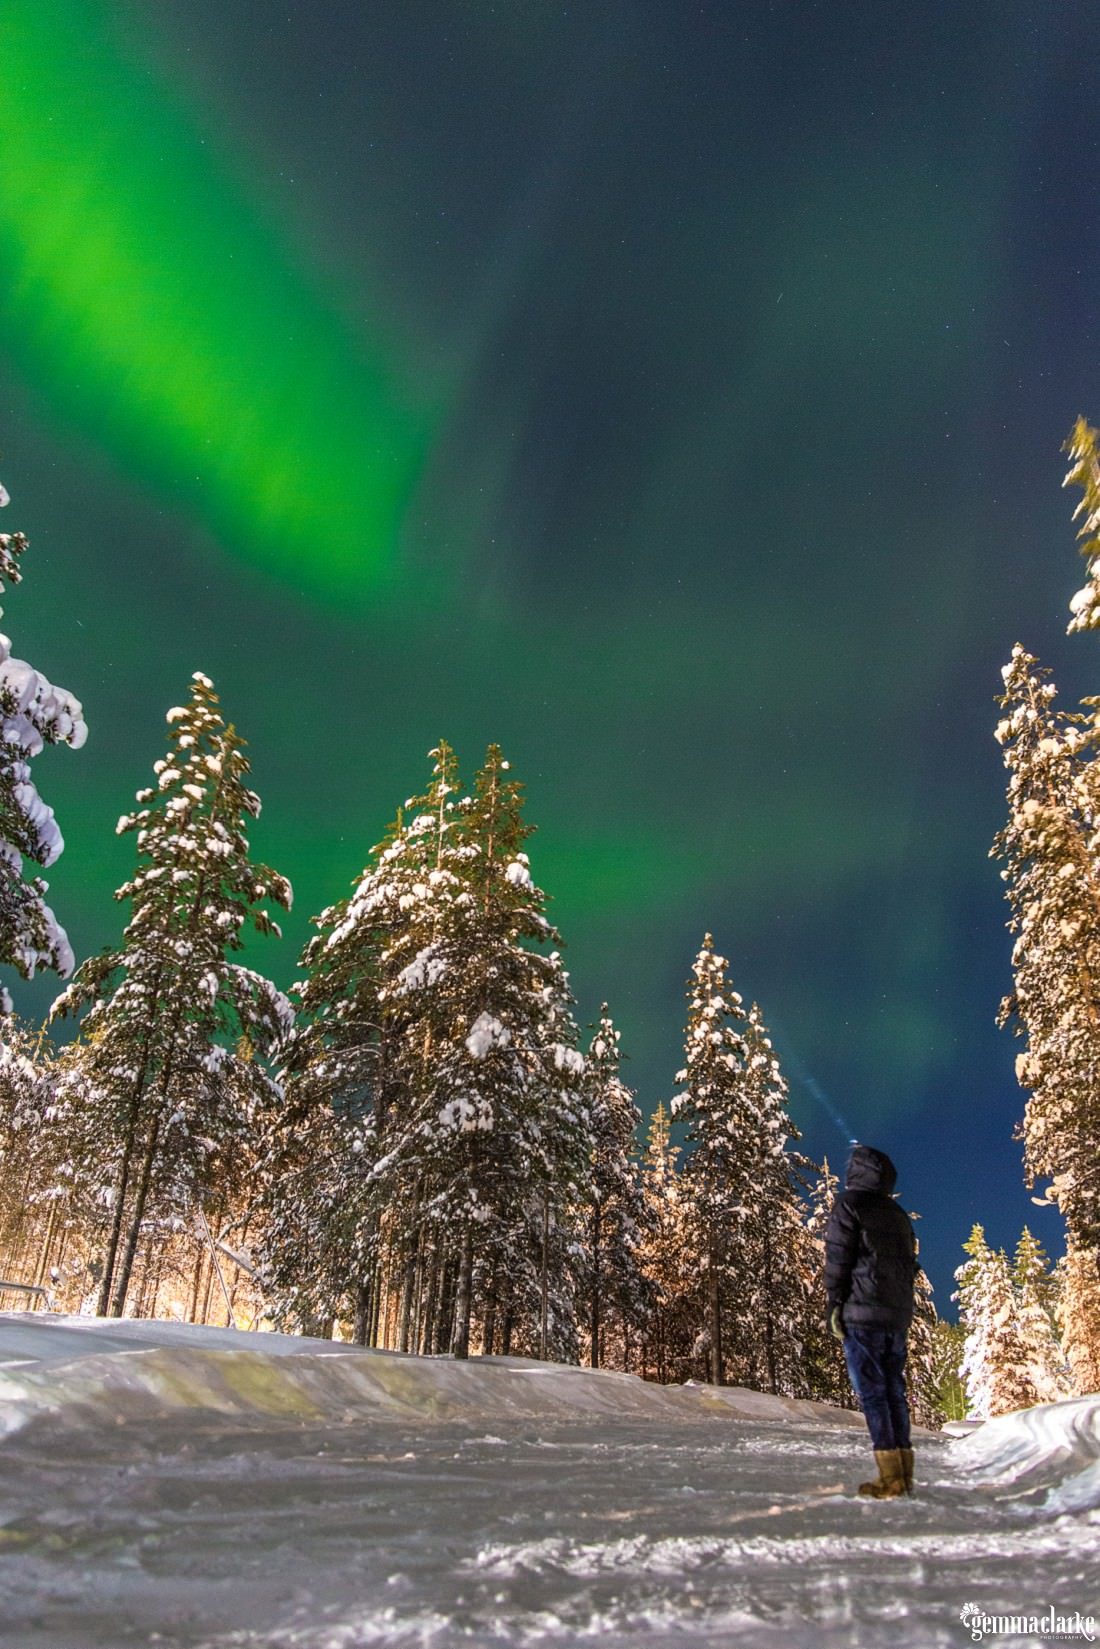 A woman looking up at the northern lights in the sky over a snowy forest